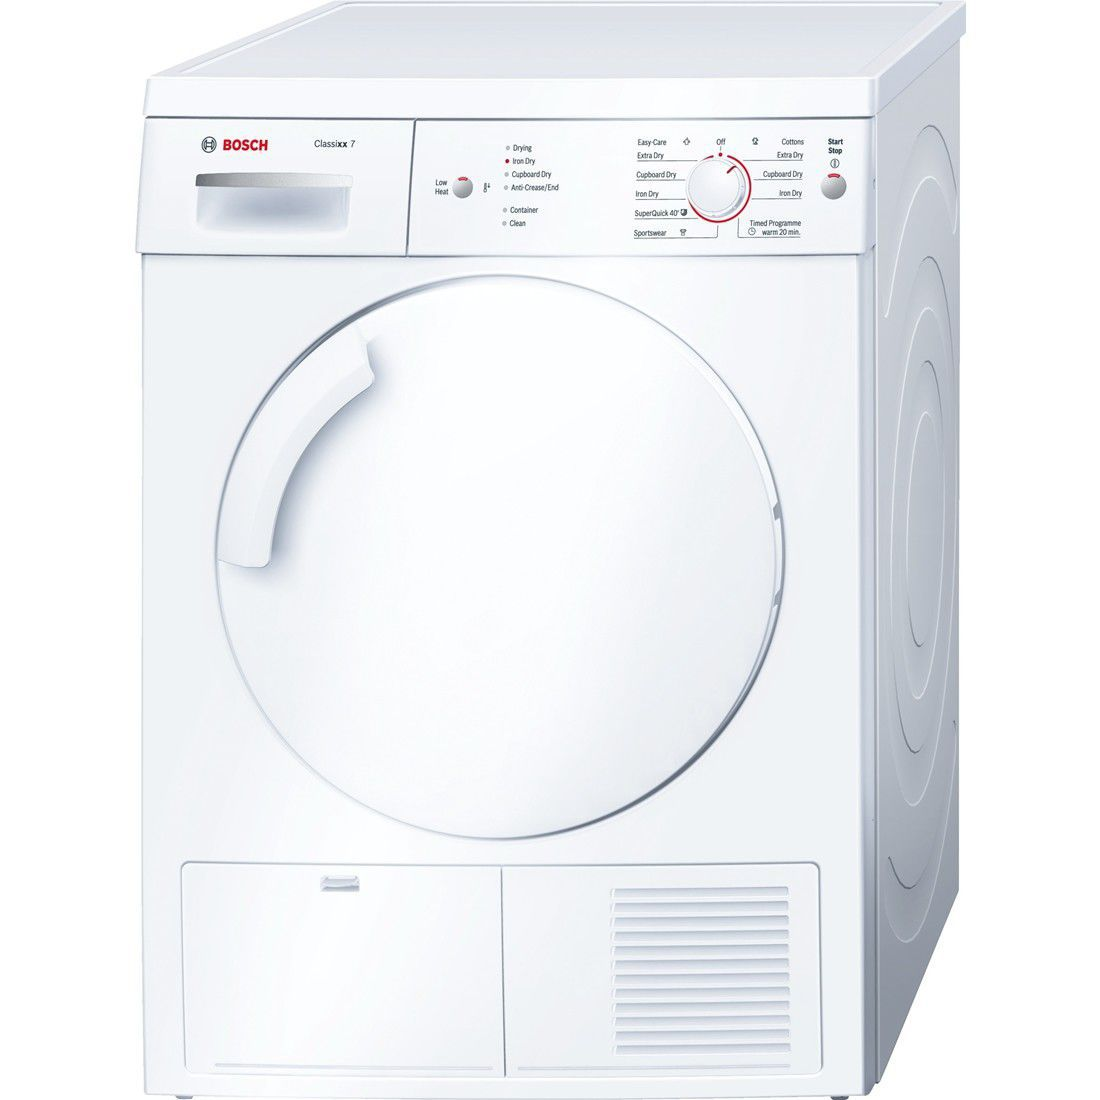 Commercial dryer - WTE84106GB - BOSCH - free-standing